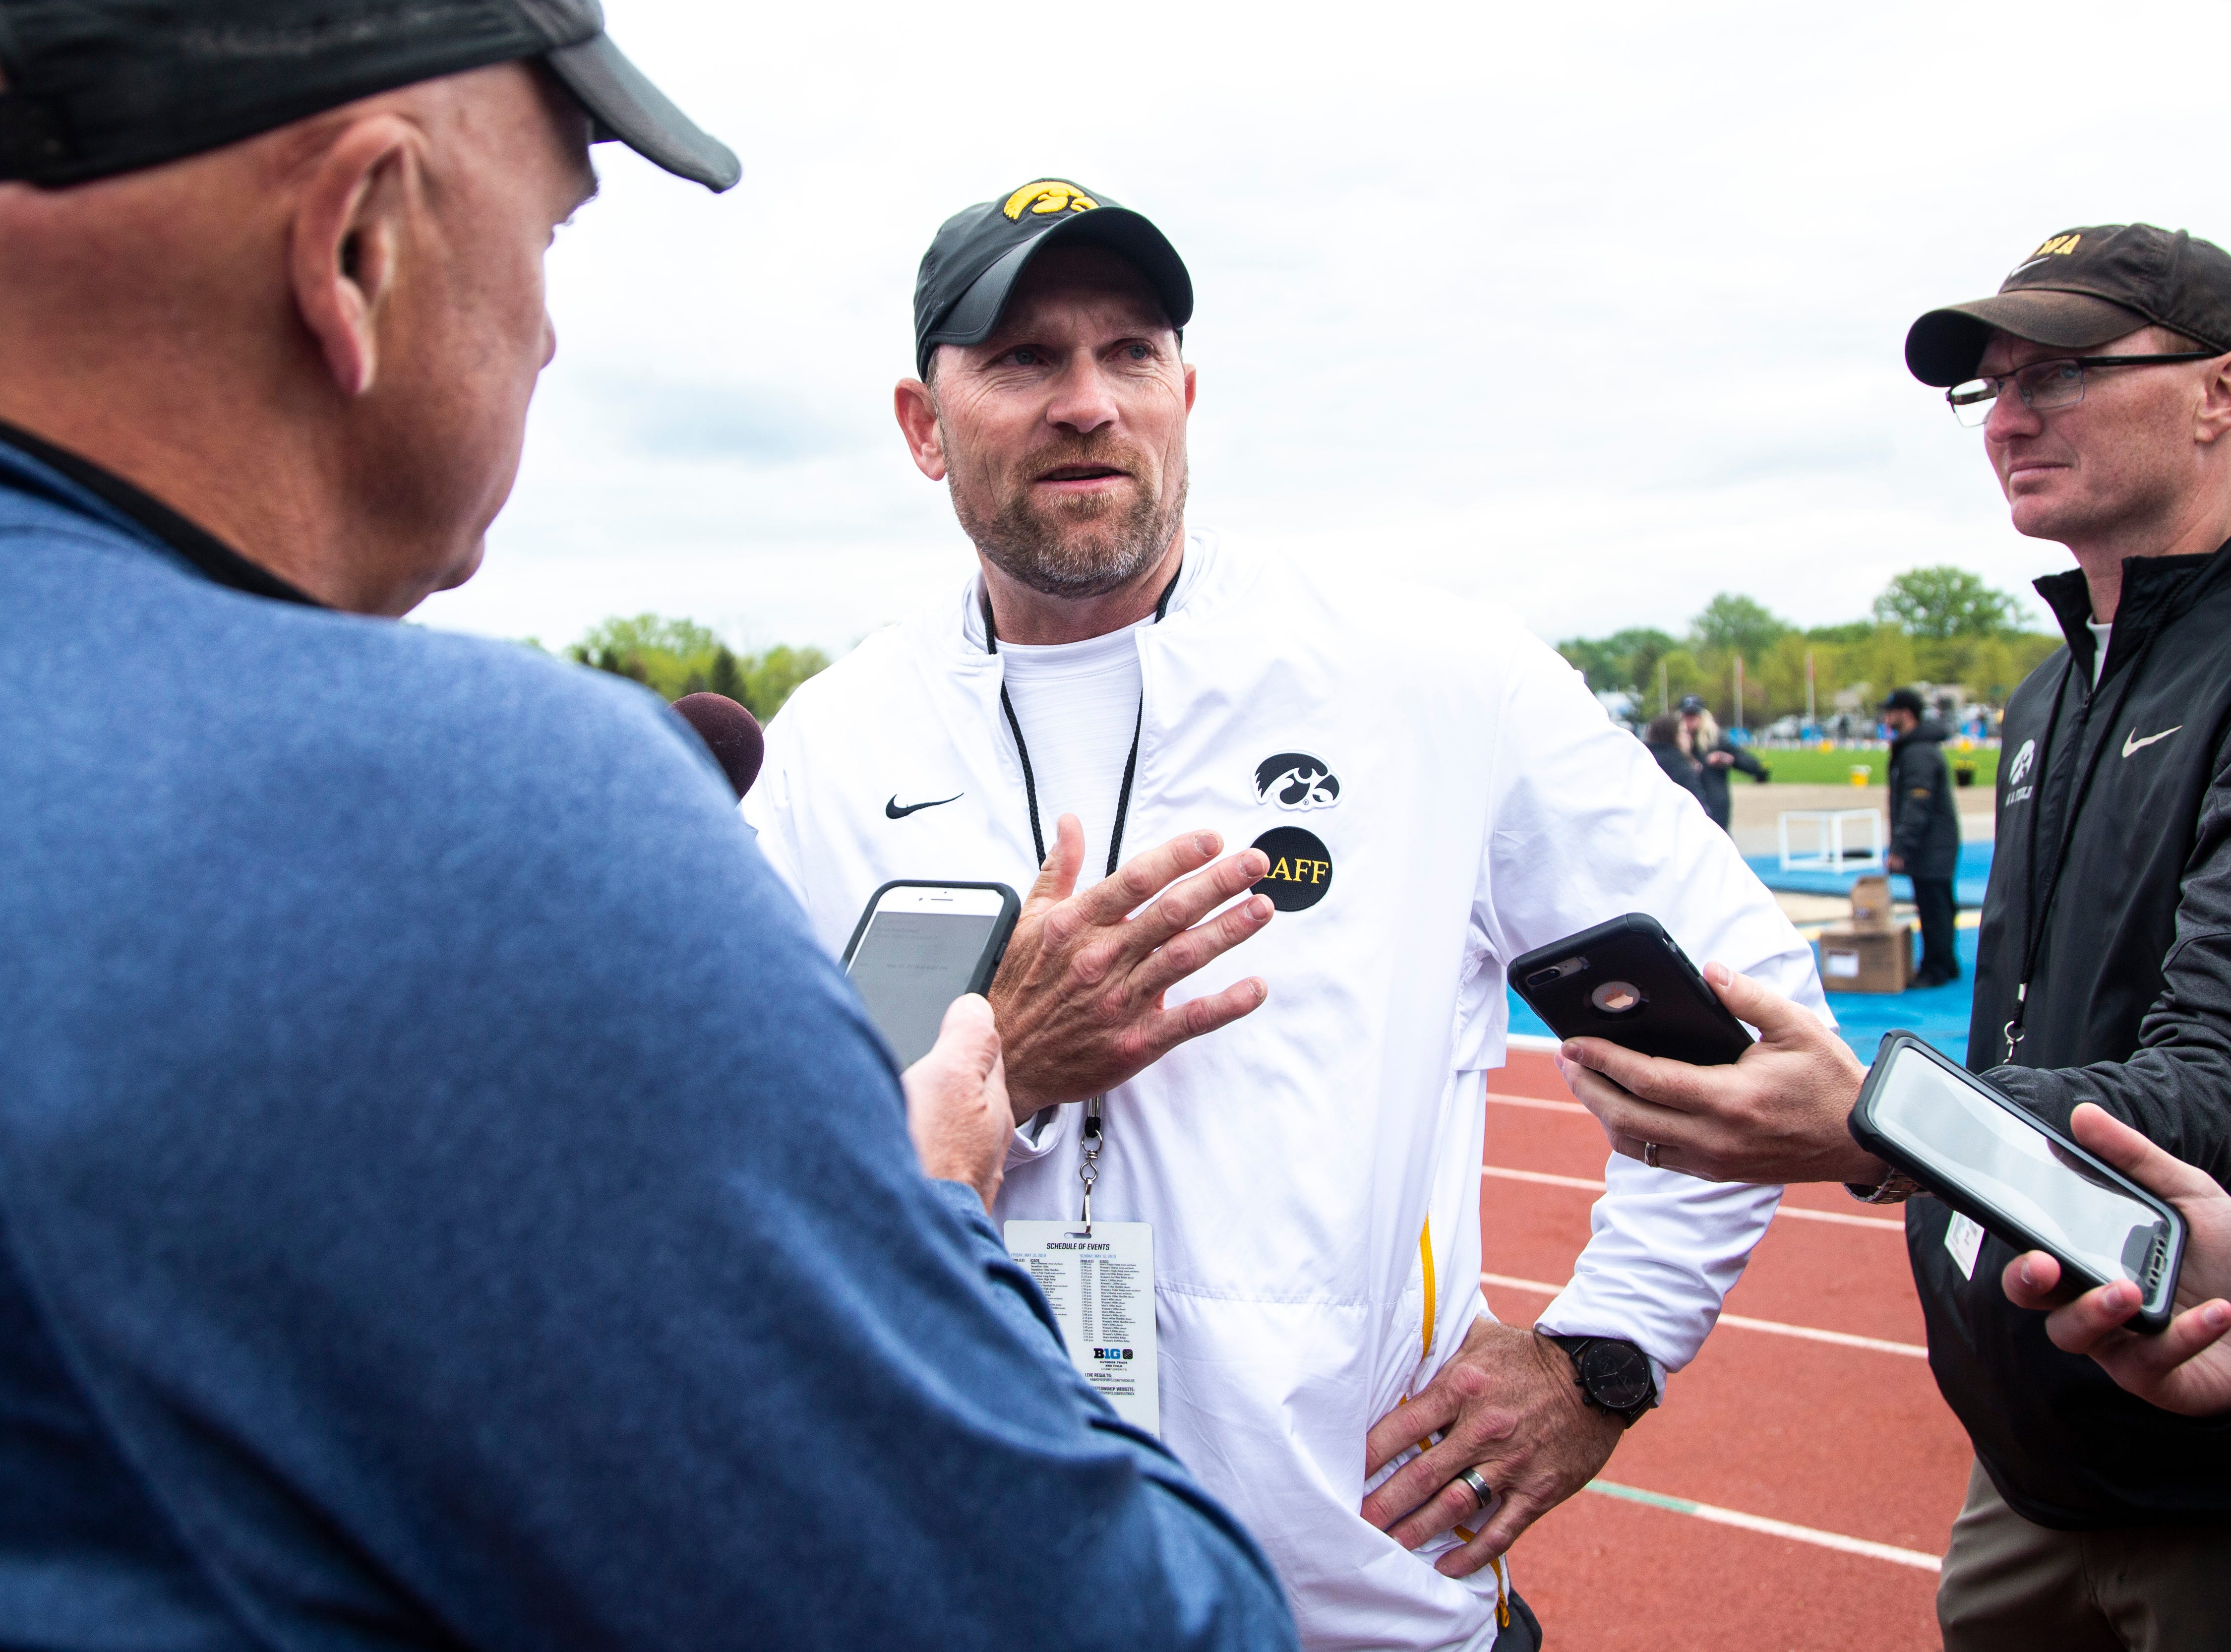 Joey Woody, the University of Iowa director of track and field, talks with reporters after the final day of Big Ten track and field outdoor championships, Sunday, May 12, 2019, at Francis X. Cretzmeyer Track on the University of Iowa campus in Iowa City, Iowa.